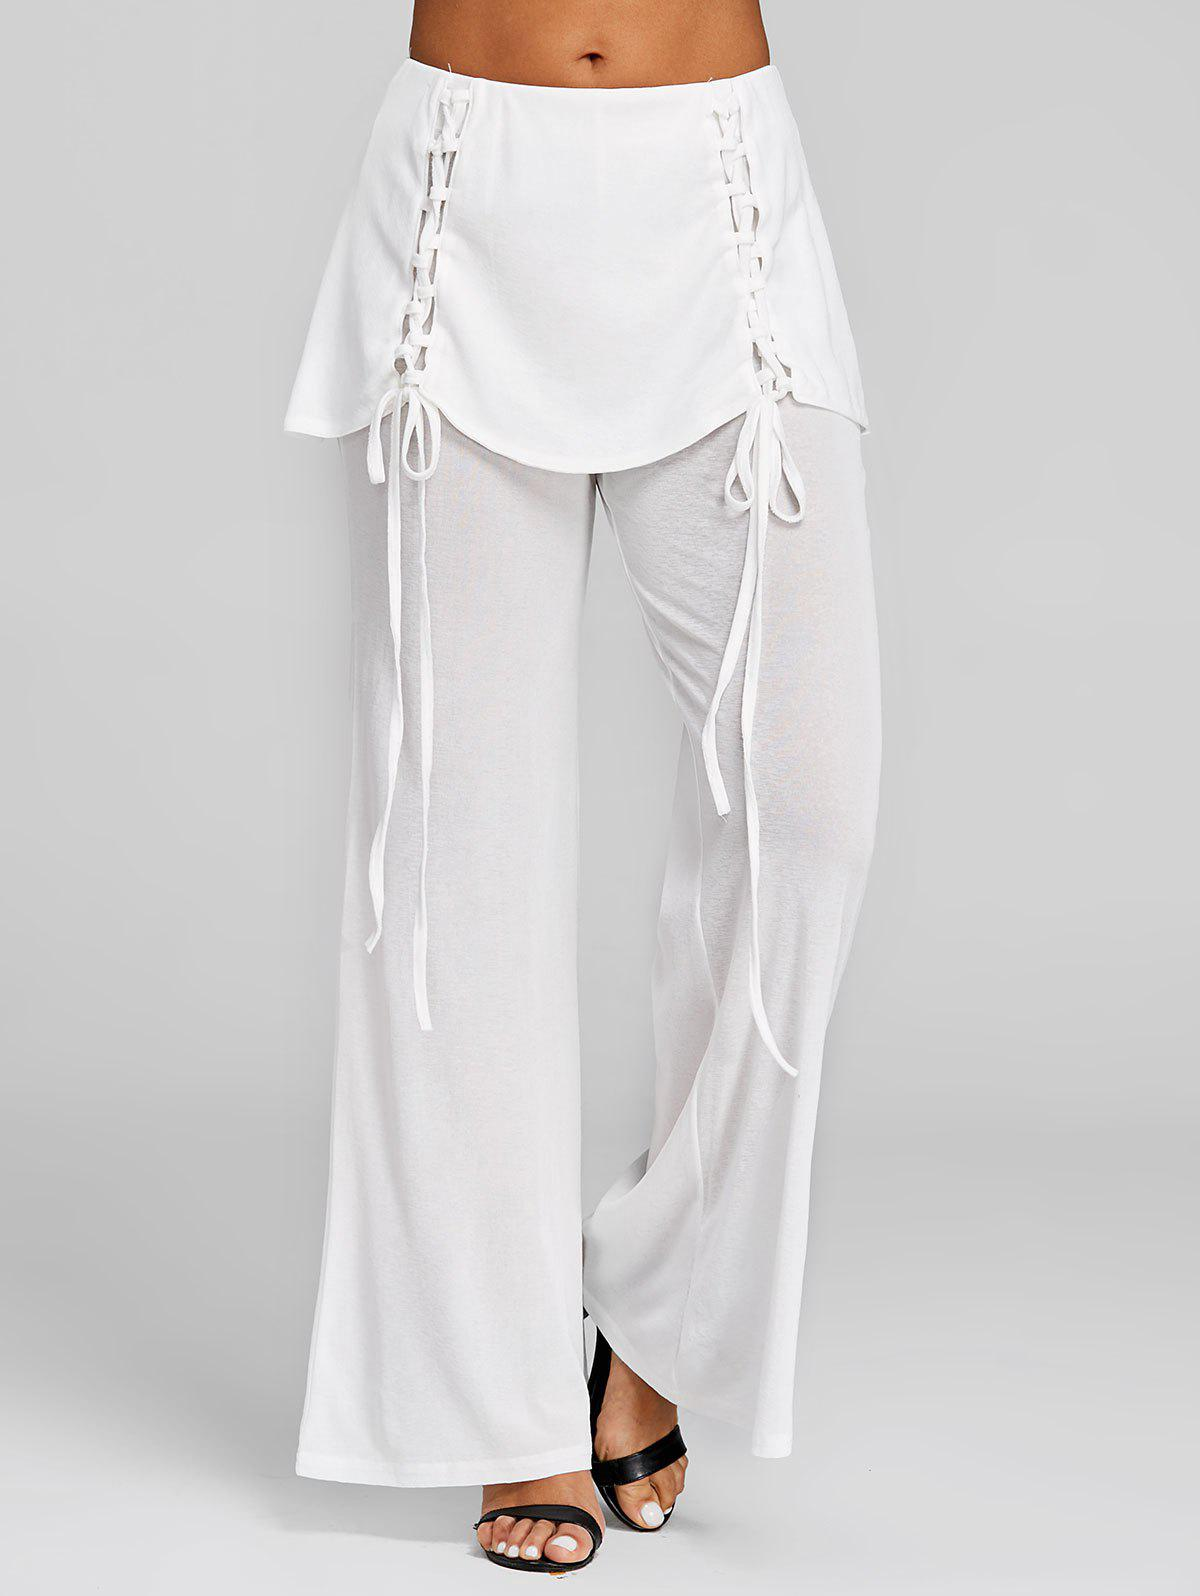 Unique Lace Up Skirted Palazzo Pants